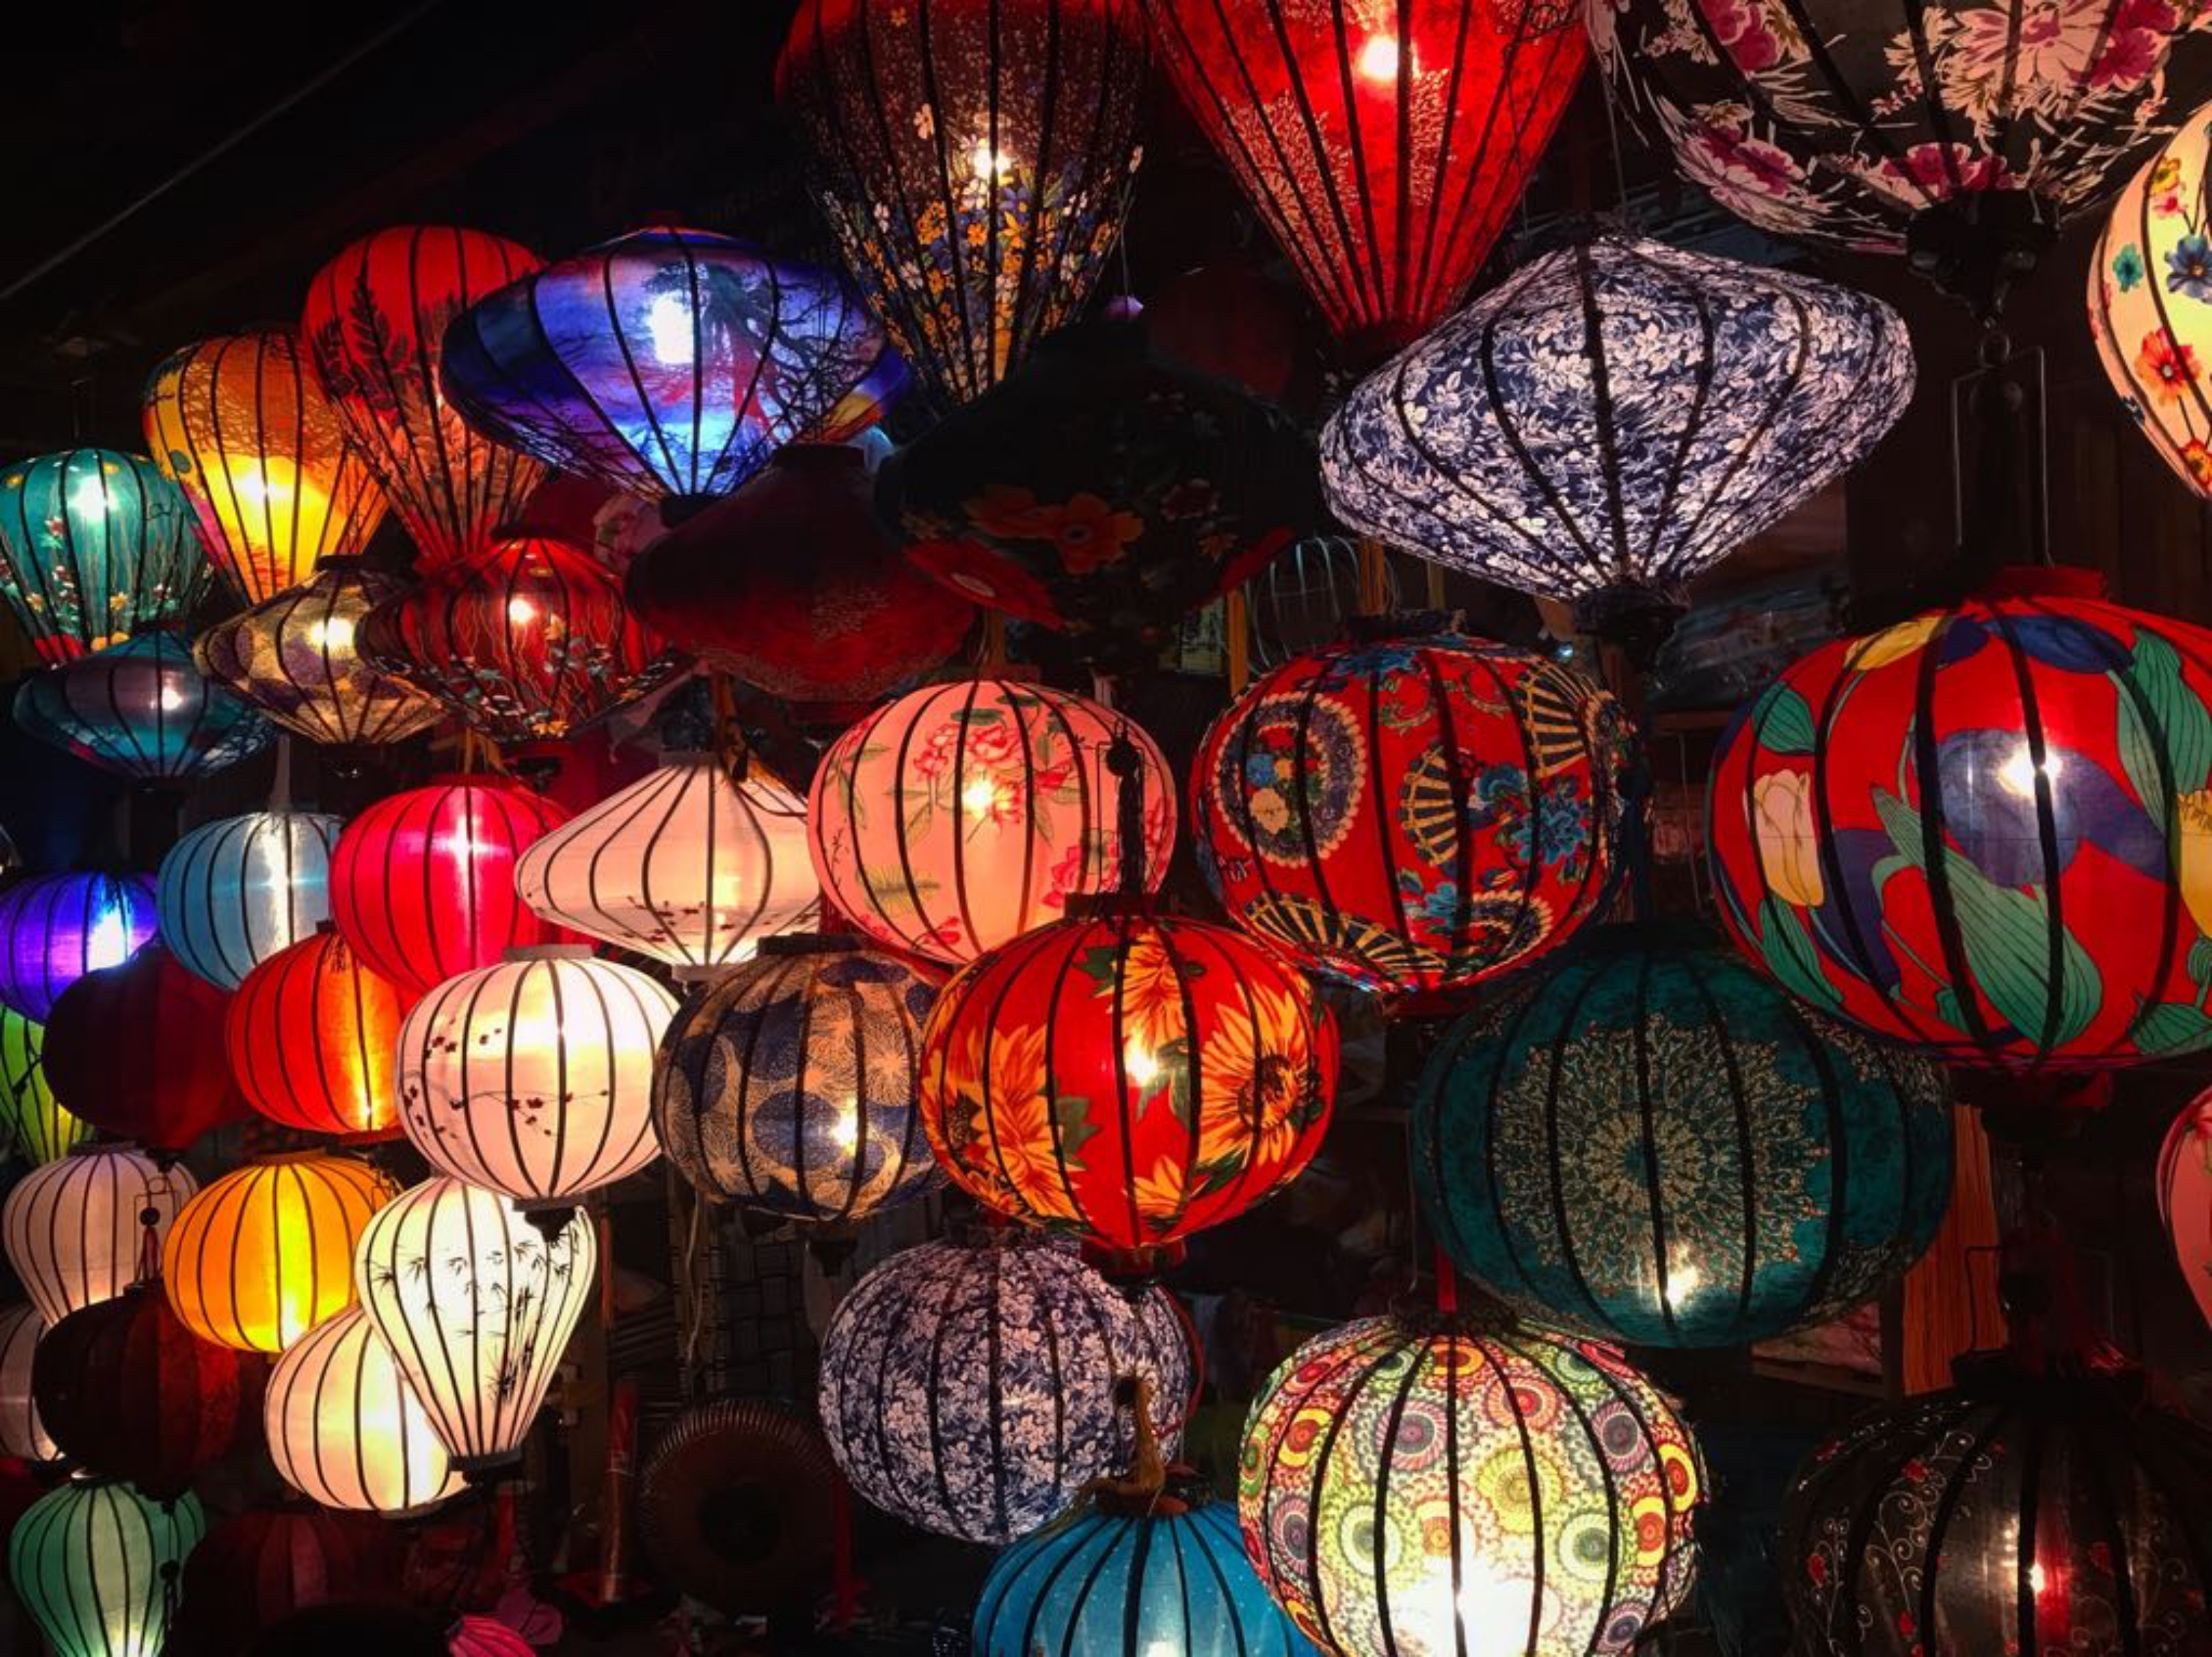 Vignettes from Hoi An: Vietnam's Most Charming Town